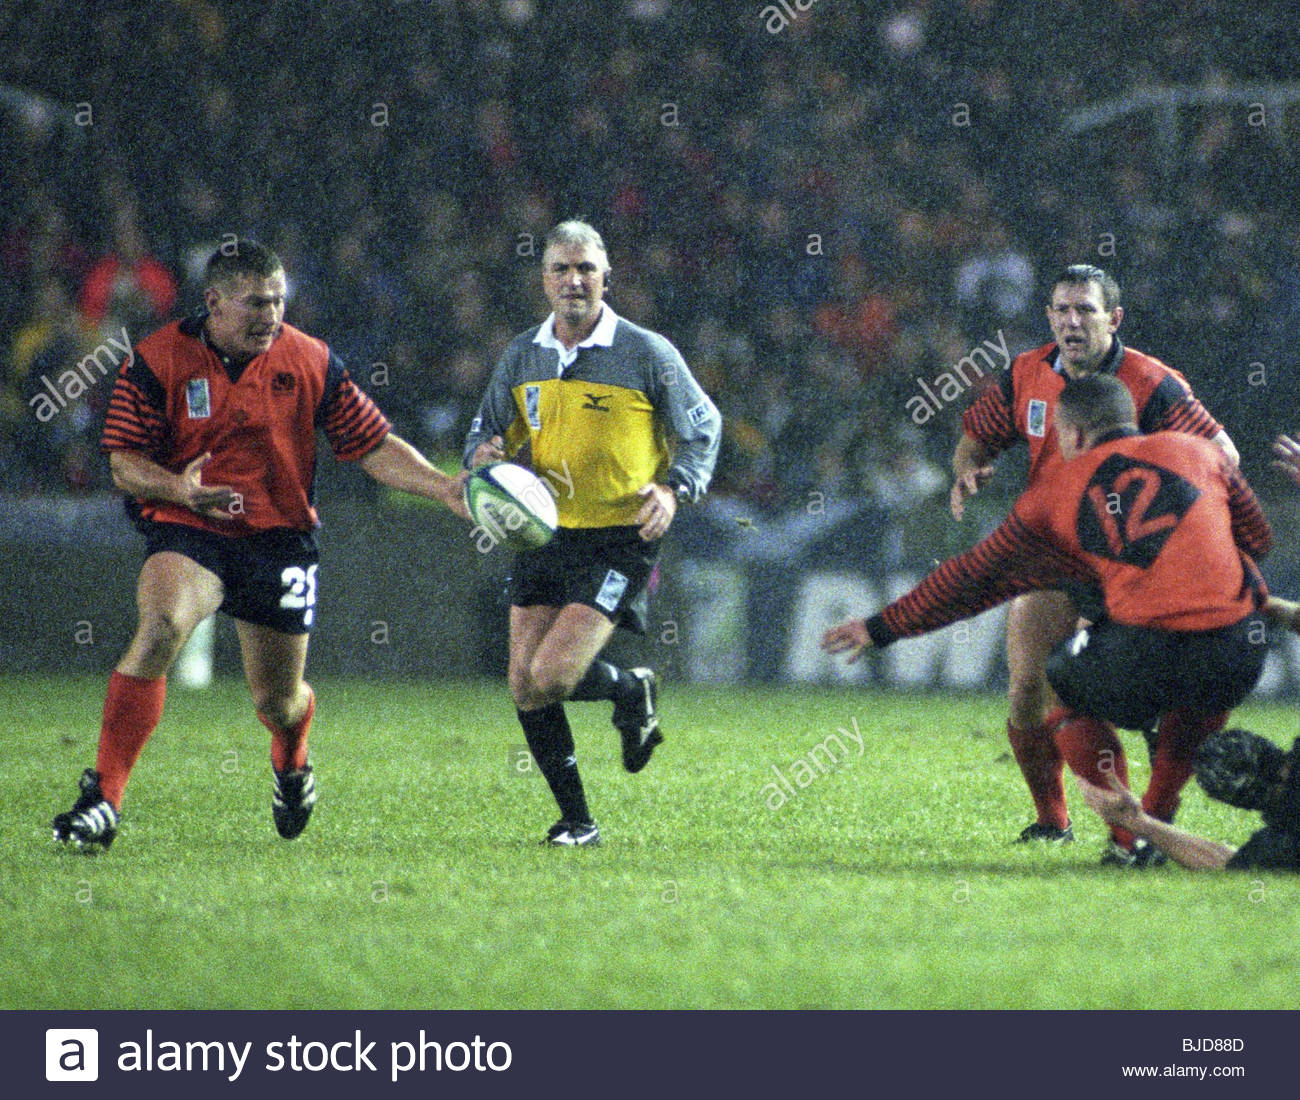 Scotland V Australia World Rugby: Rugby Pass Stock Photos & Rugby Pass Stock Images